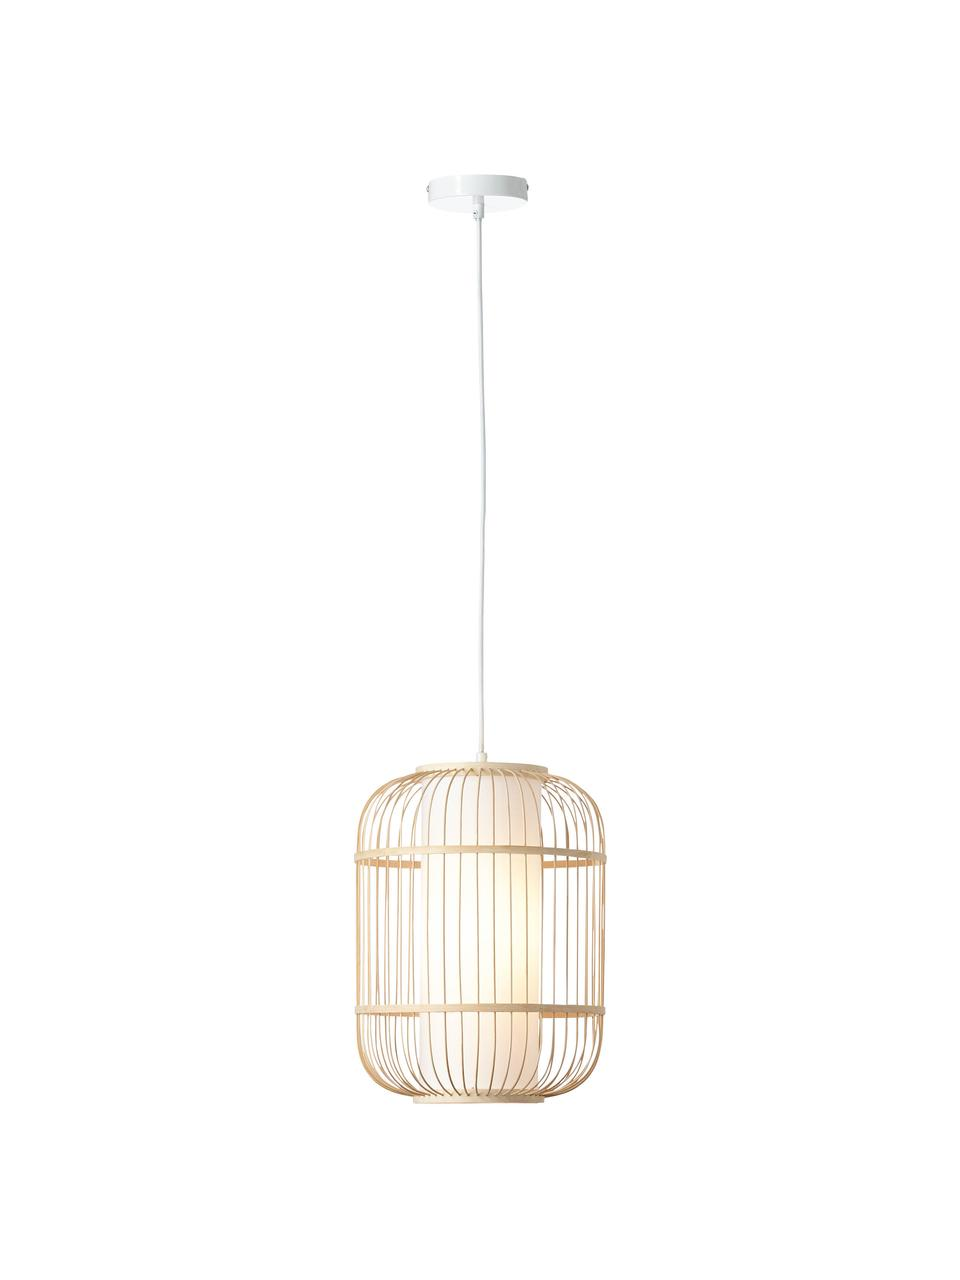 Suspension en bambou Bones, Brun clair, blanc